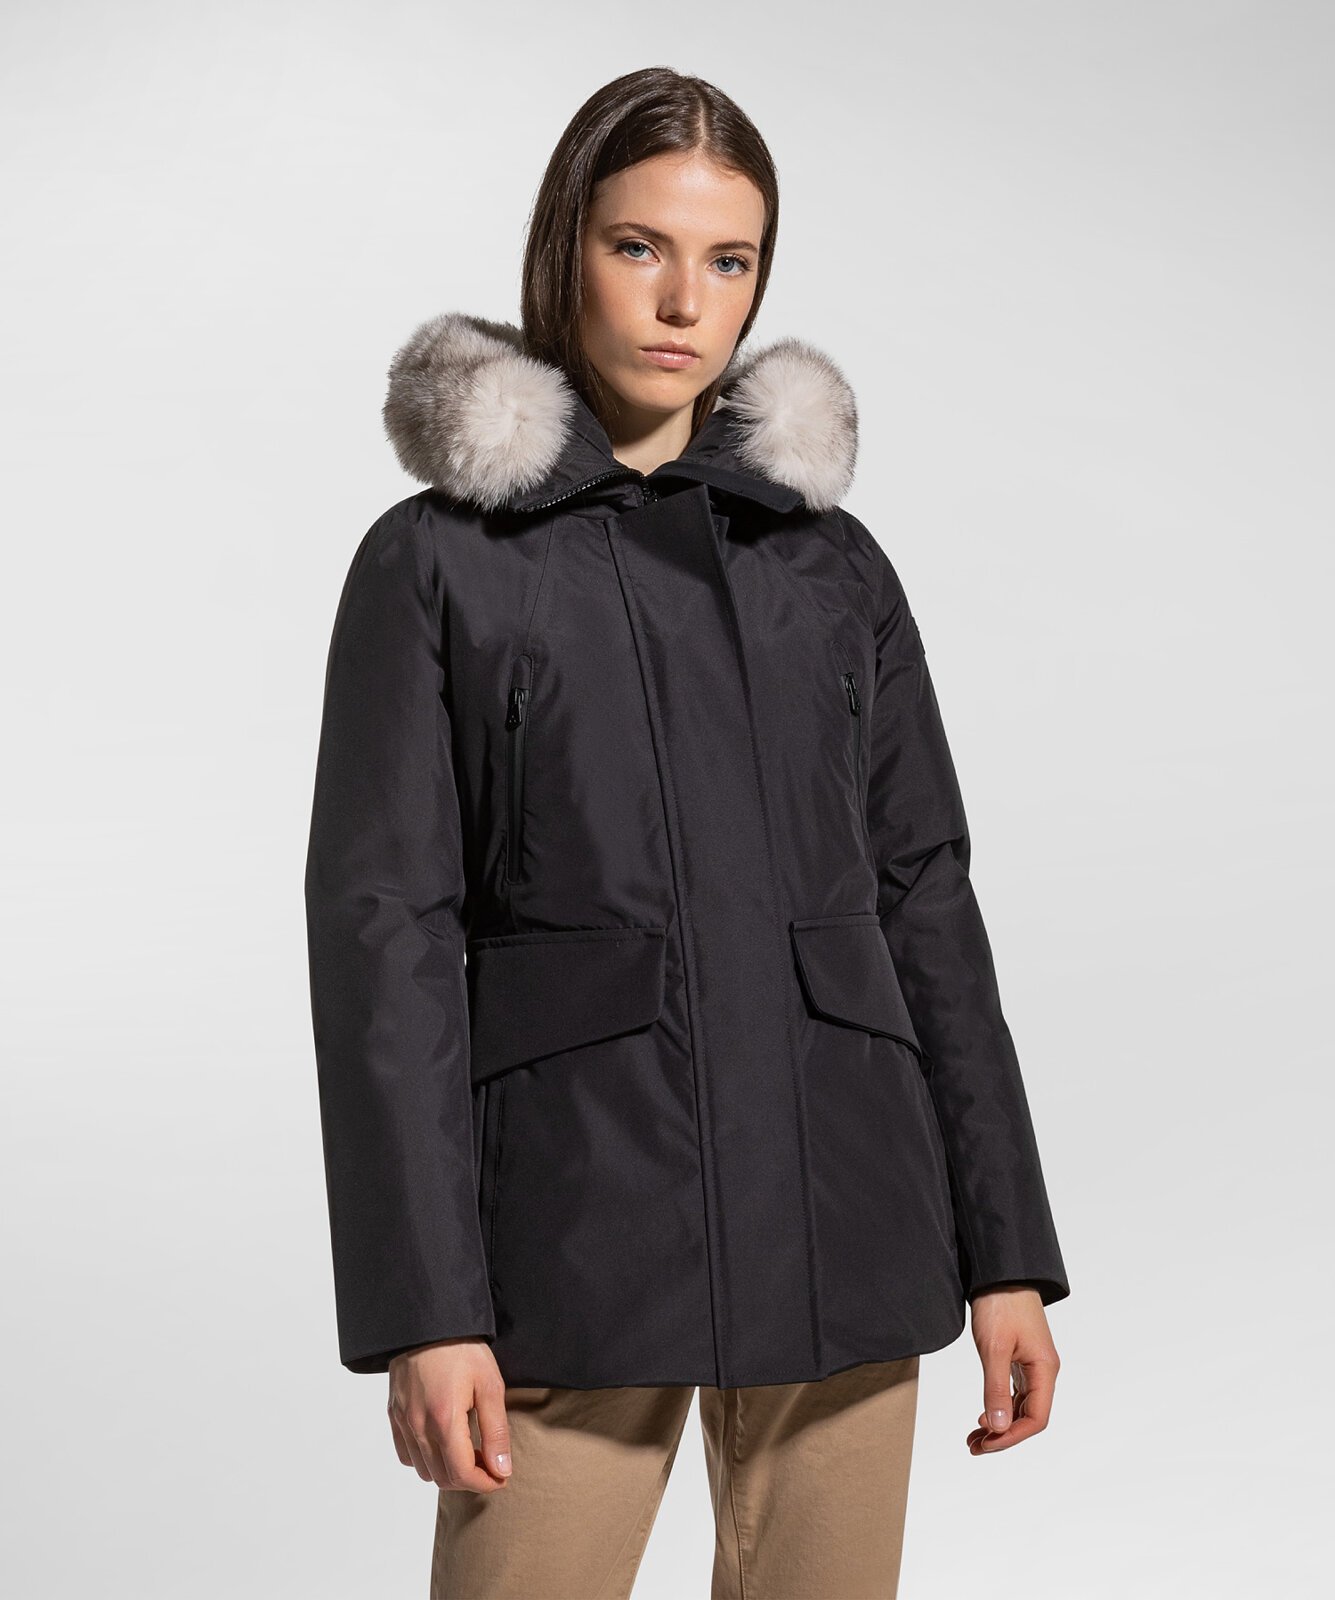 Parka in technical laminated fabric - Peuterey